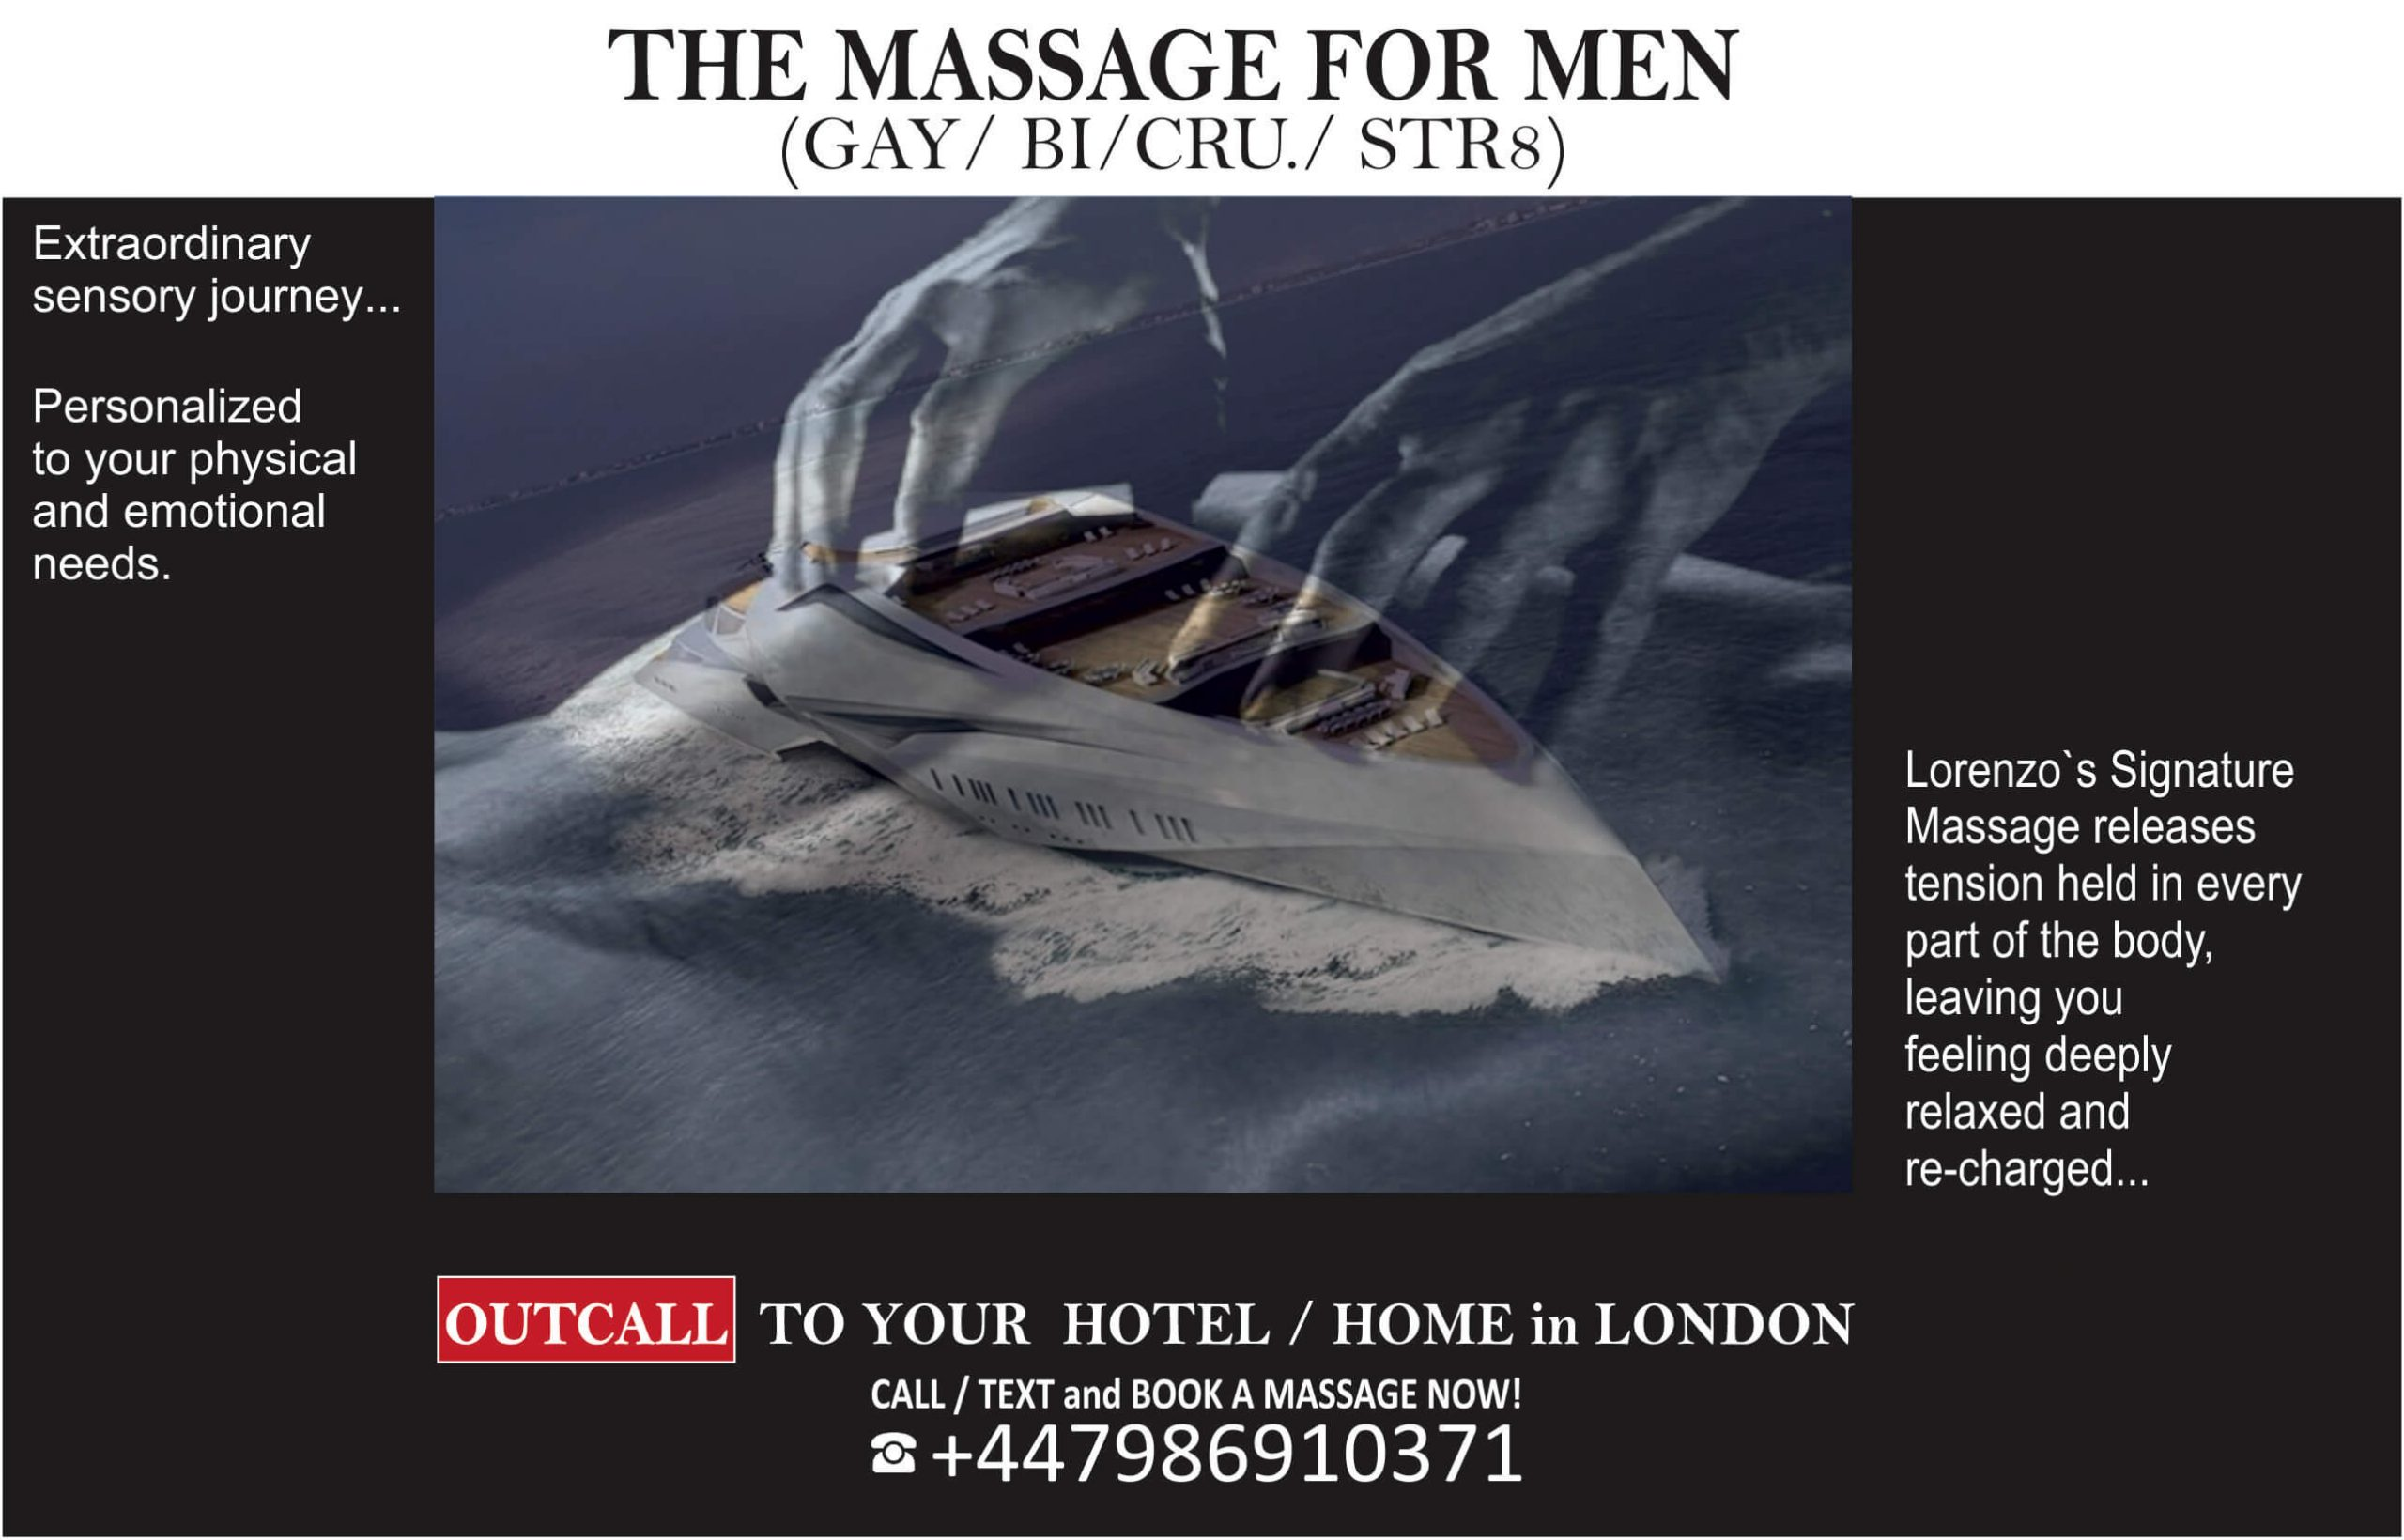 male massage london gay massage london male massage gay massage male to male massage best male massage full body massage male urban massage massage london male massage (13)